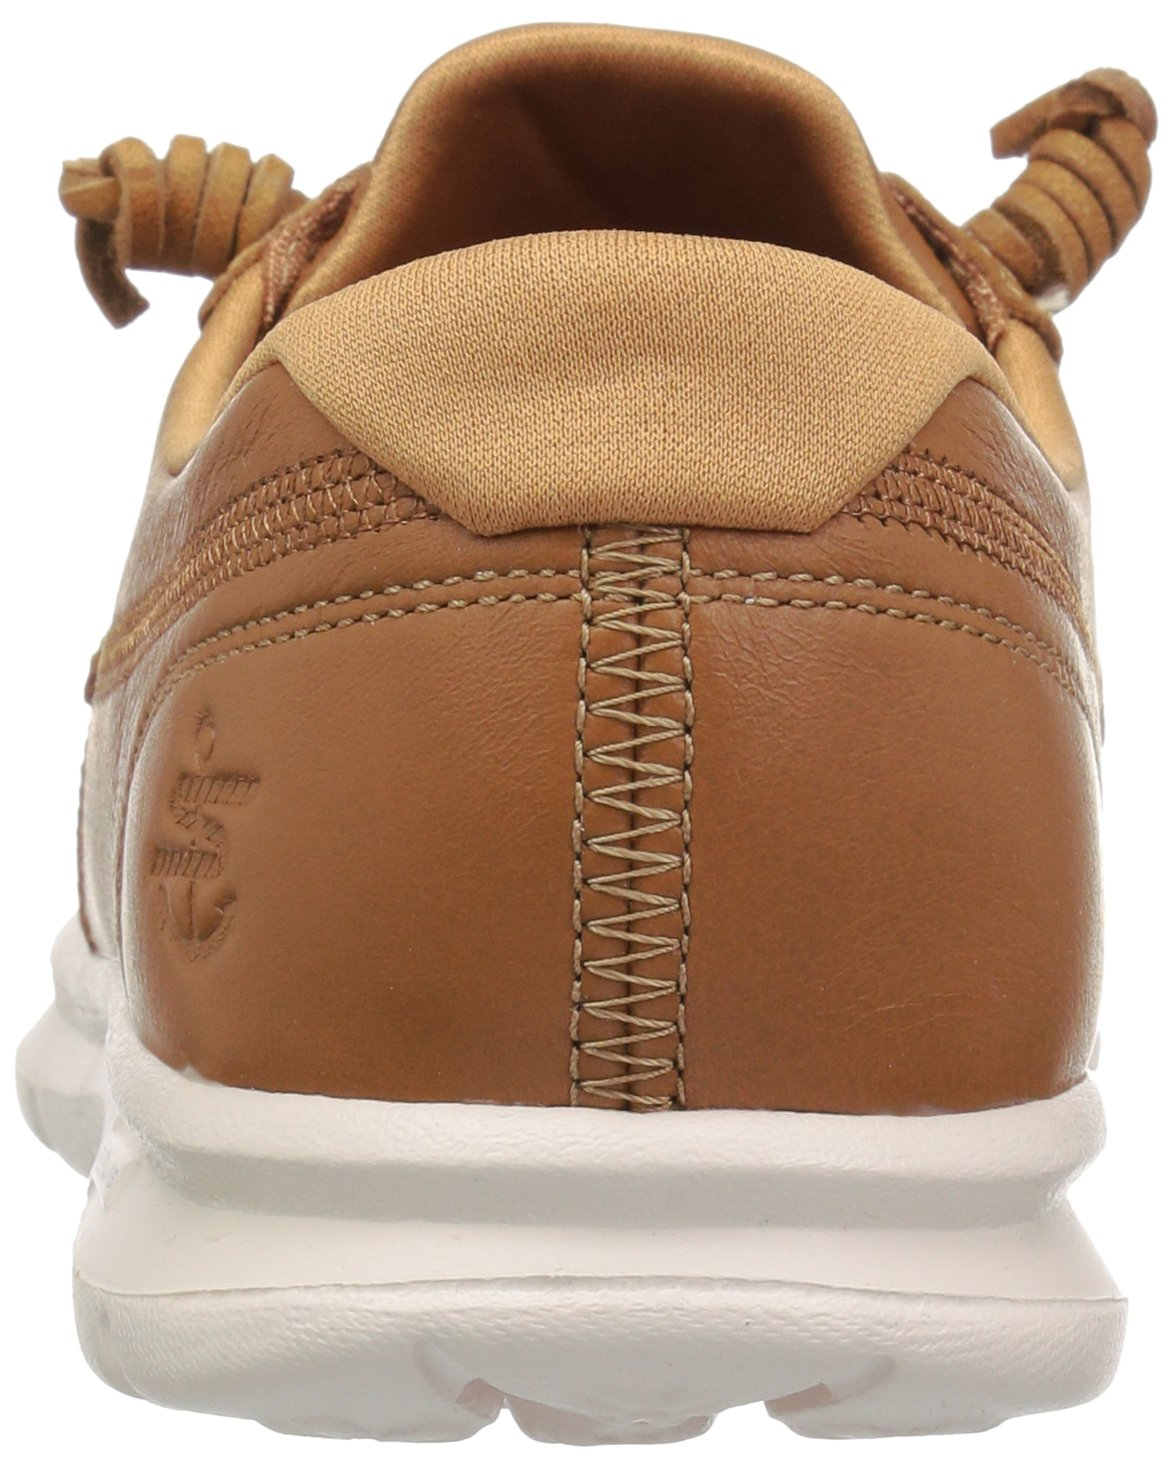 Skechers Performance Women's 10 Go Step Modish B01NAT31B3 10 Women's B(M) US|Tan 610d61